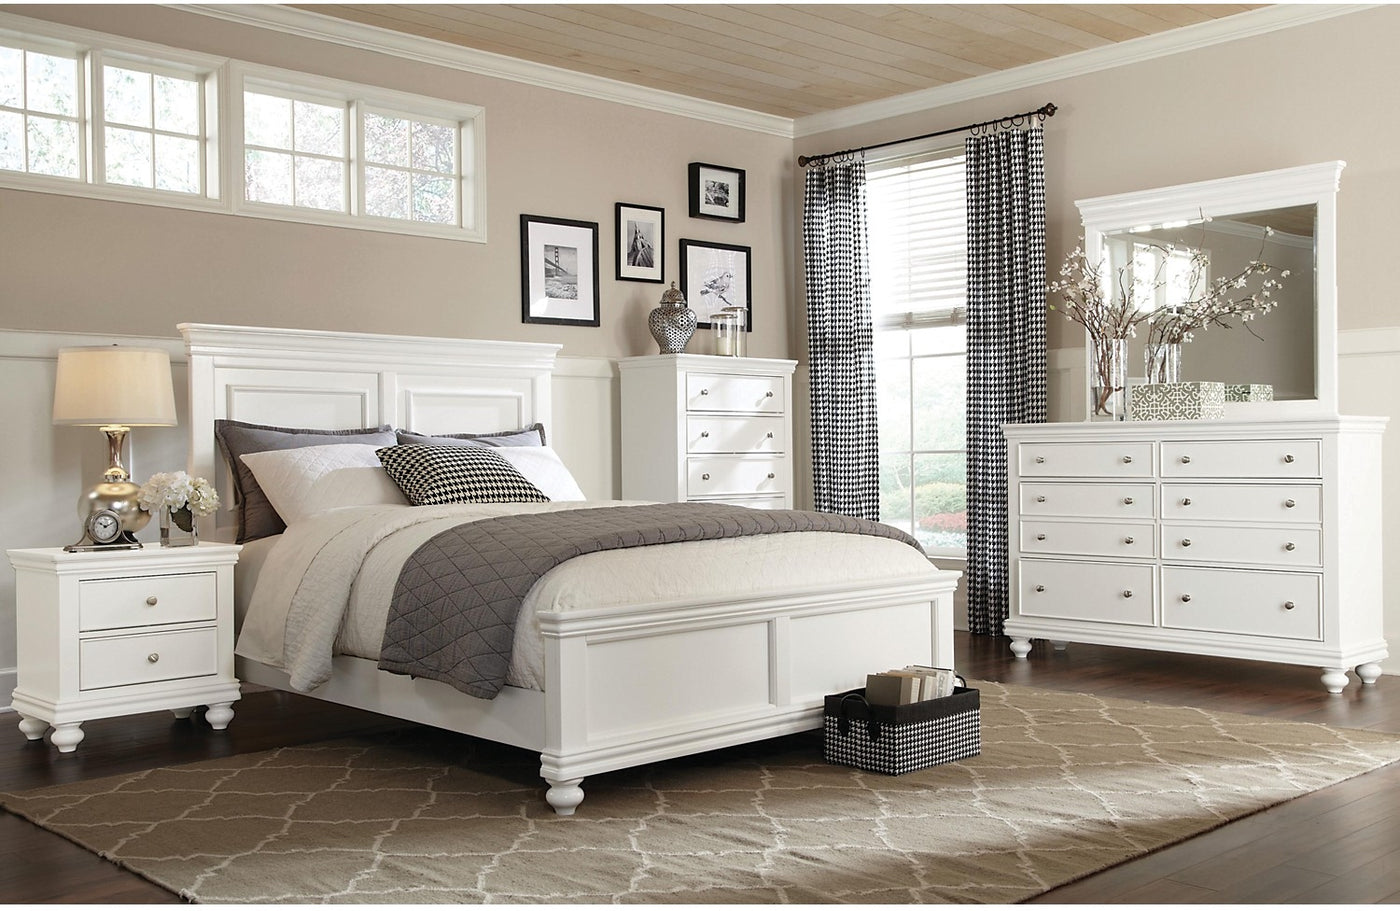 Bridgeport 6 piece king bedroom set whiteensemble de chambre à coucher bridgeport tap to expand